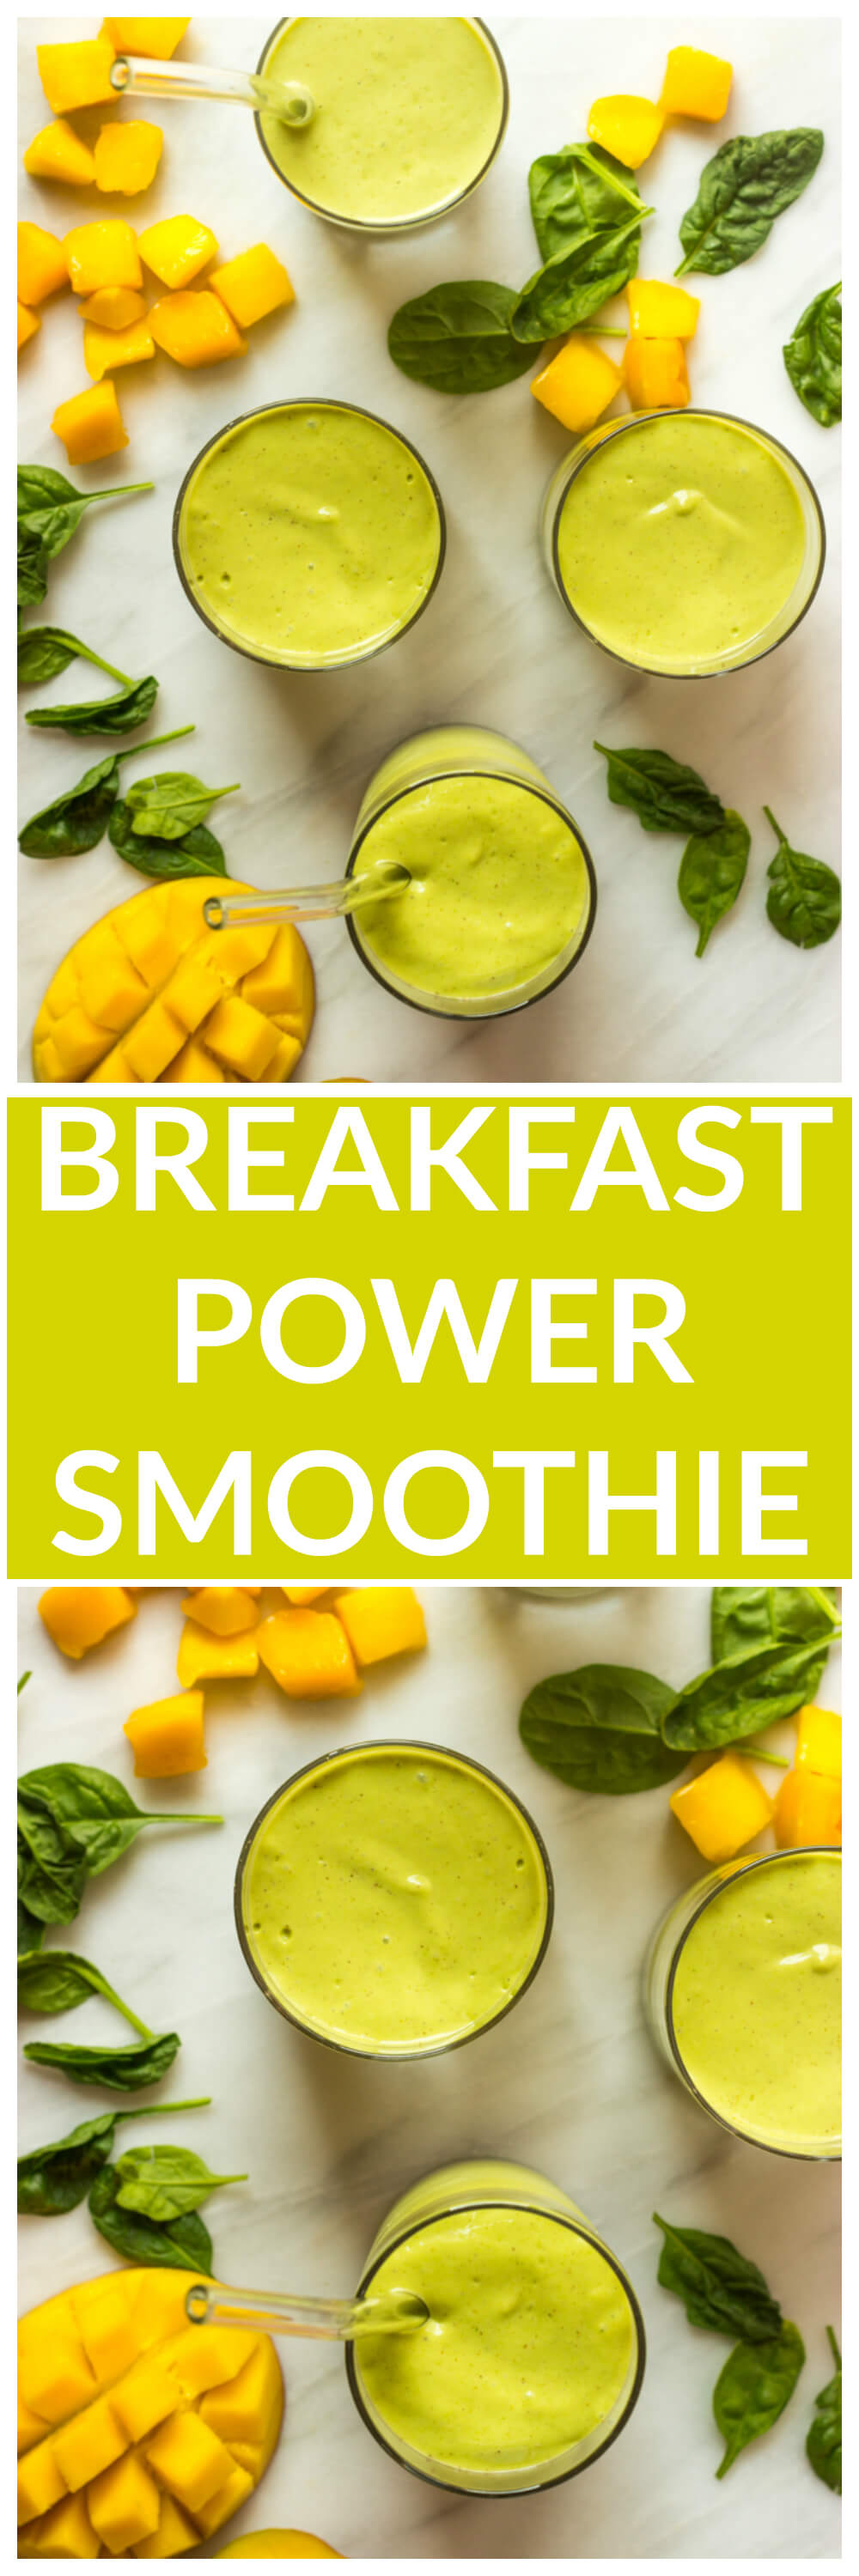 Breakfast Power Smoothie - perfect dose of greens, fruit, and creaminess! | littlebroken.com @littlebroken